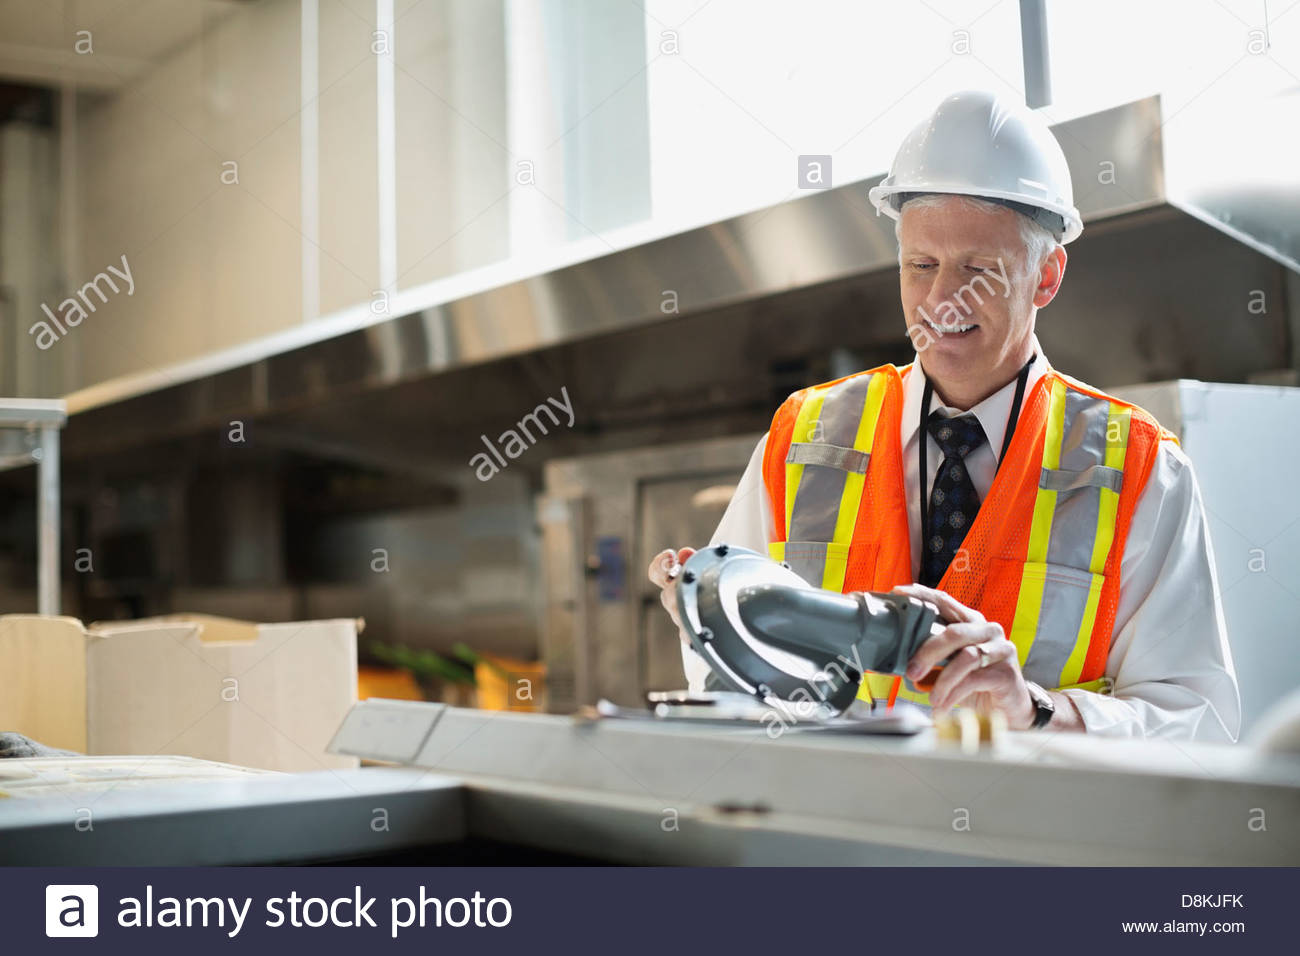 Male architect inspecting kitchen fixture at construction site - Stock Image